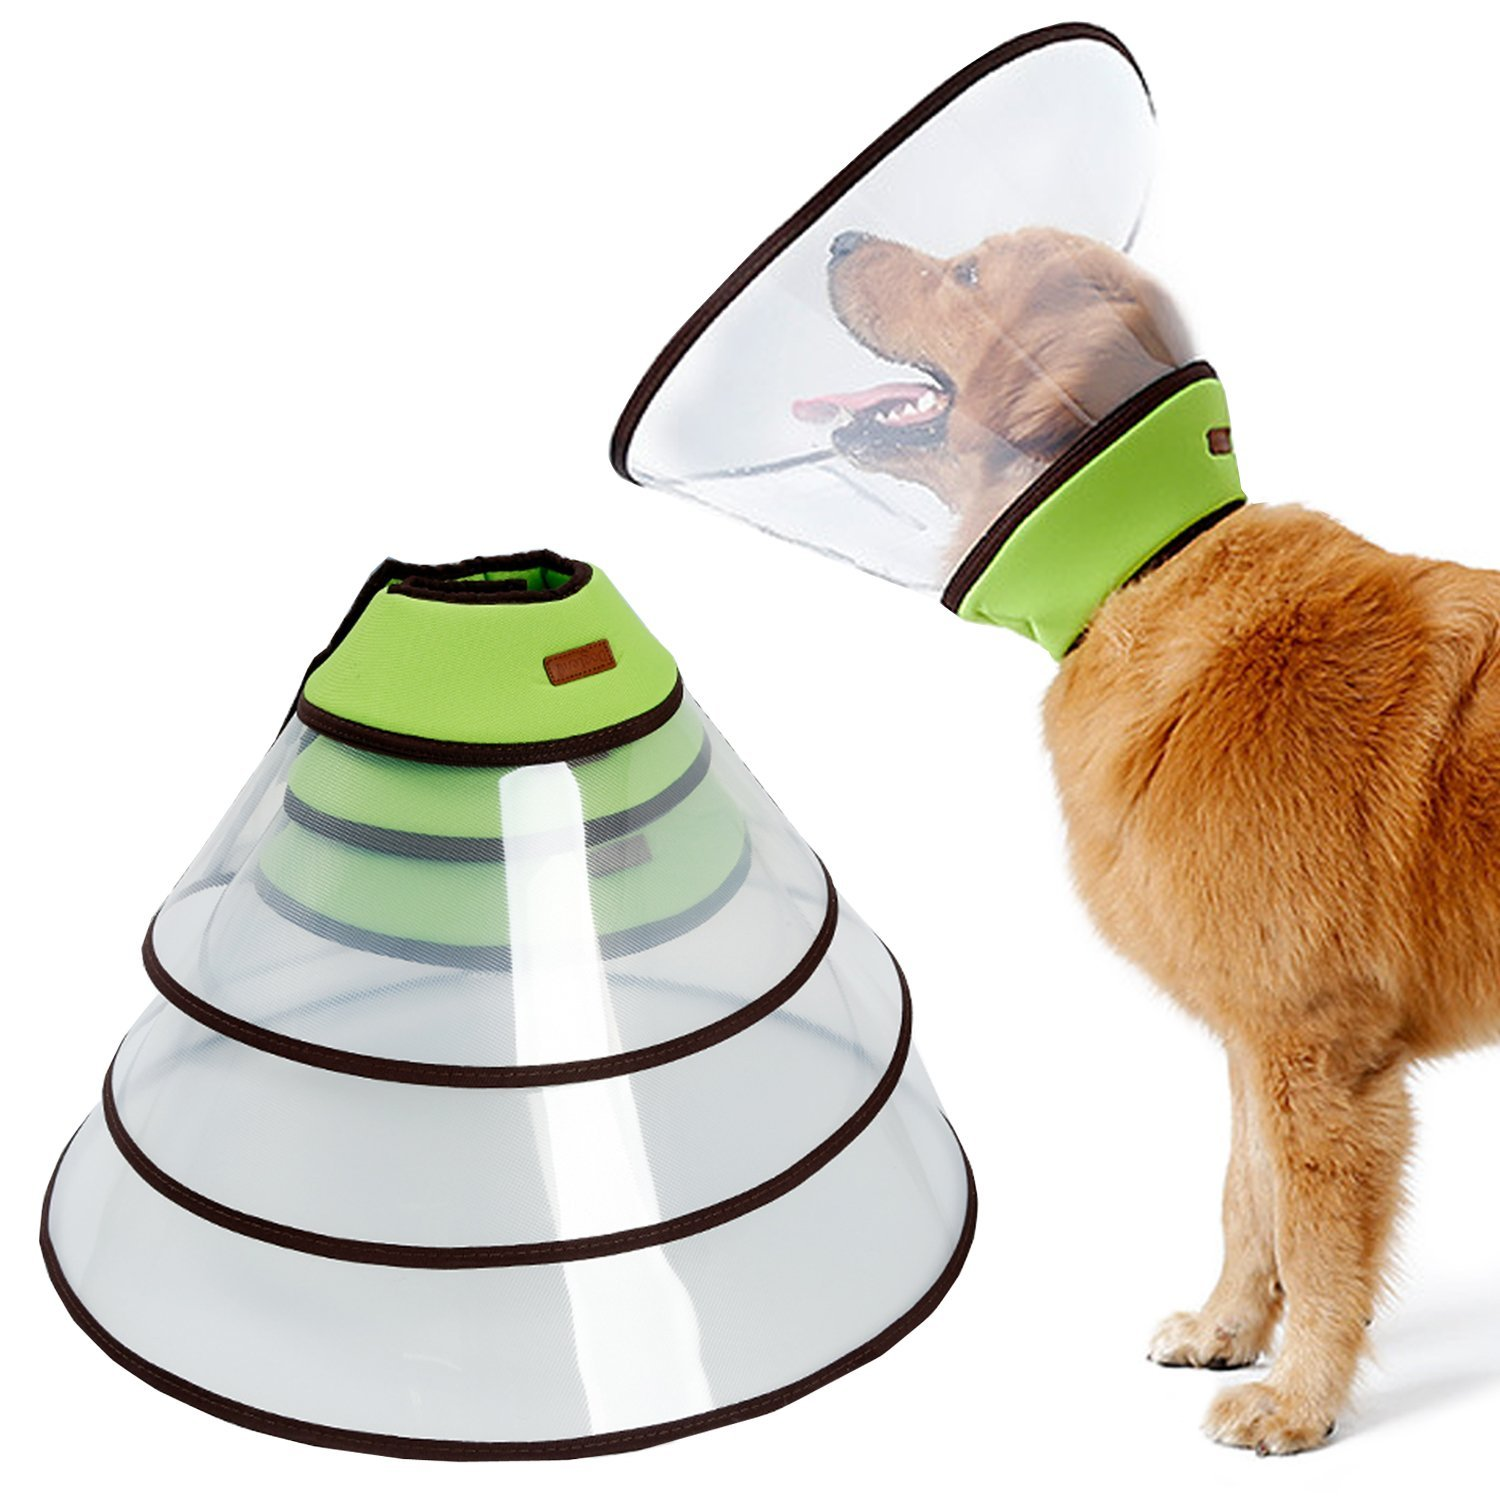 Dog Cone for Large Dogs, Adjustable Padded Dog Cone Collar with Velcro and Soft Edge, Plastic Recovery Cone for Dogs Suitable for Extra Large, Large and Medium Breeds